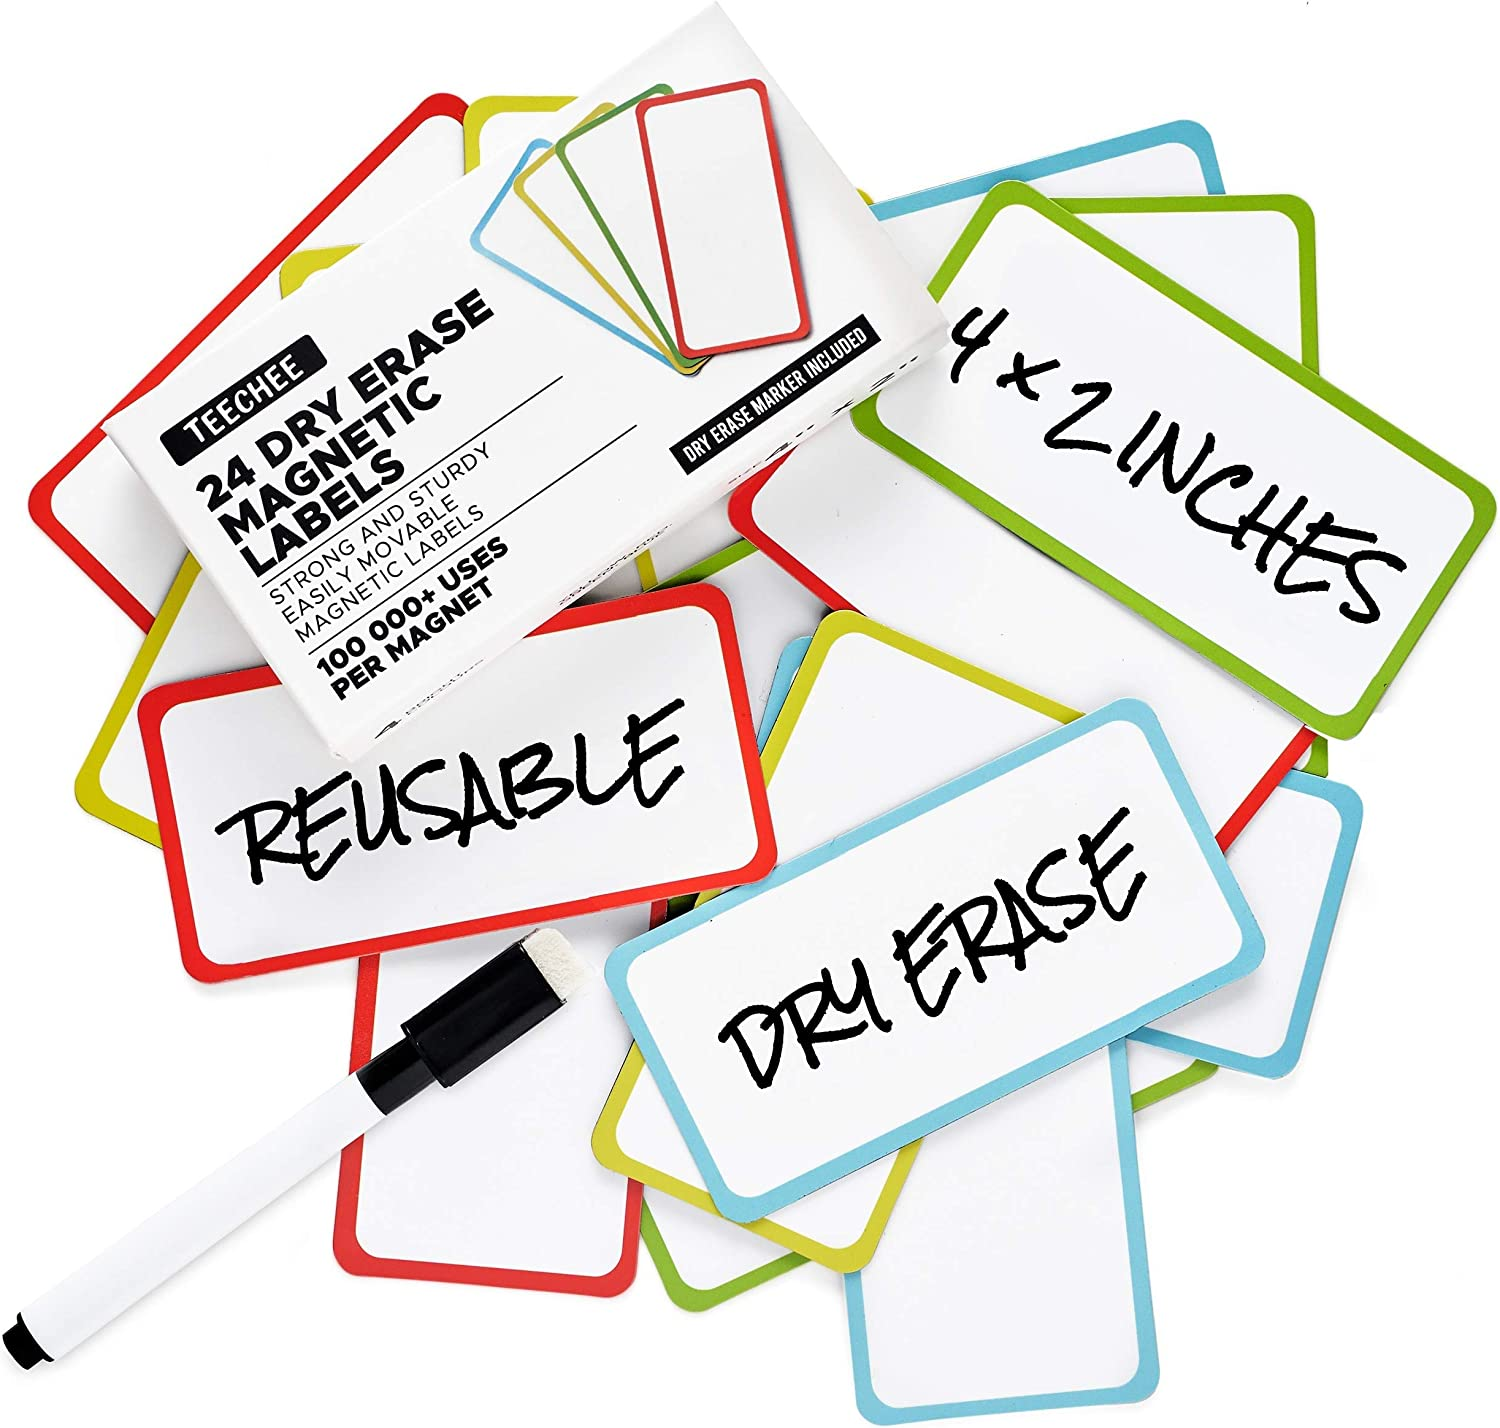 24 Magnetic Dry Erase Labels 4x2 inches by TeeChee + Dry Erase Marker | Reusable Dry Erase Magnets | for Homeschool, Office, Classroom, Household | Use on Whiteboards and Other Magnetic Surfaces